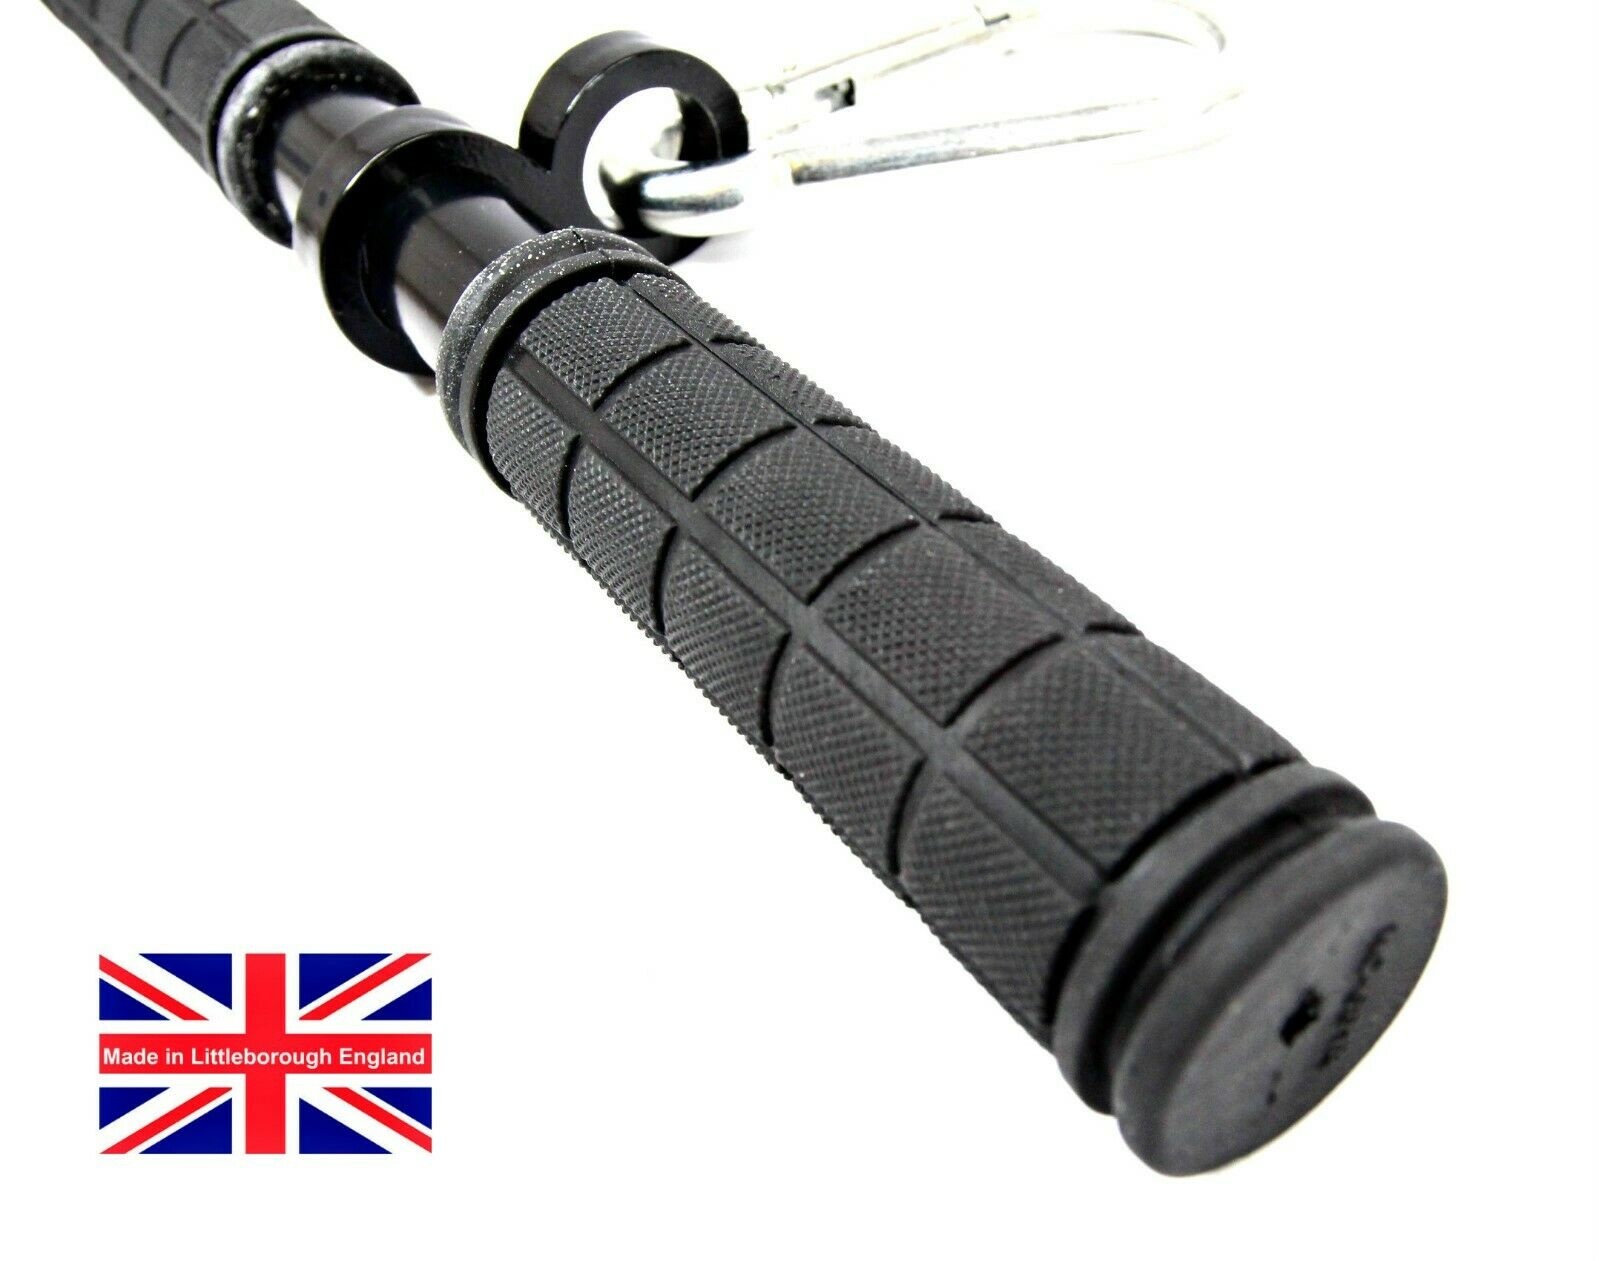 Zip Line Wire Handlebars 22mm Rubber Grip Grip Grip With Carabina bb4934